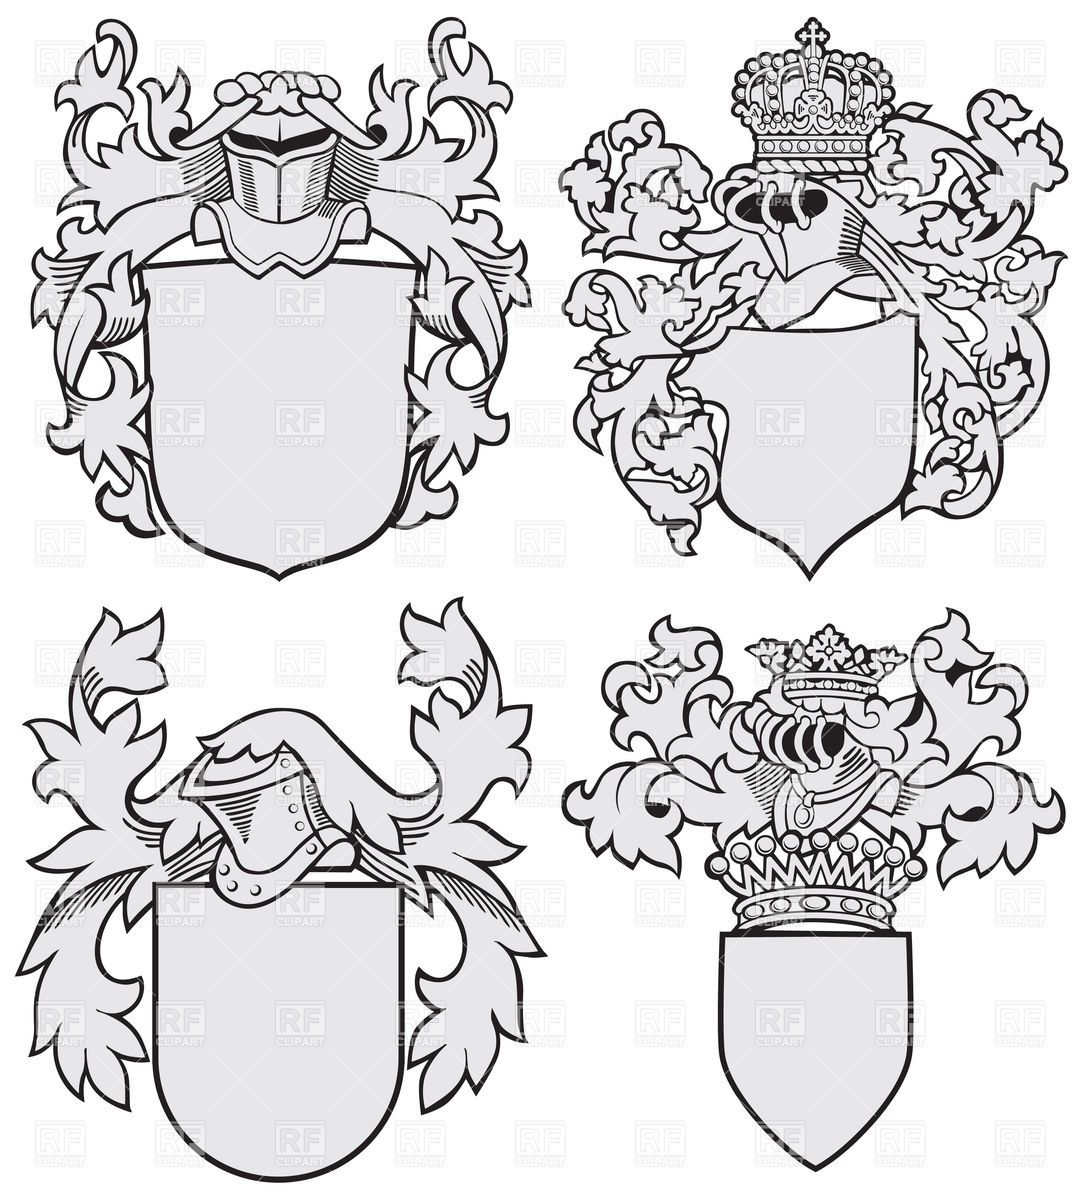 Wide crest clipart blank clip free Coat Of Arms Template Lion | Coat of Arms | Coat of arms ... clip free